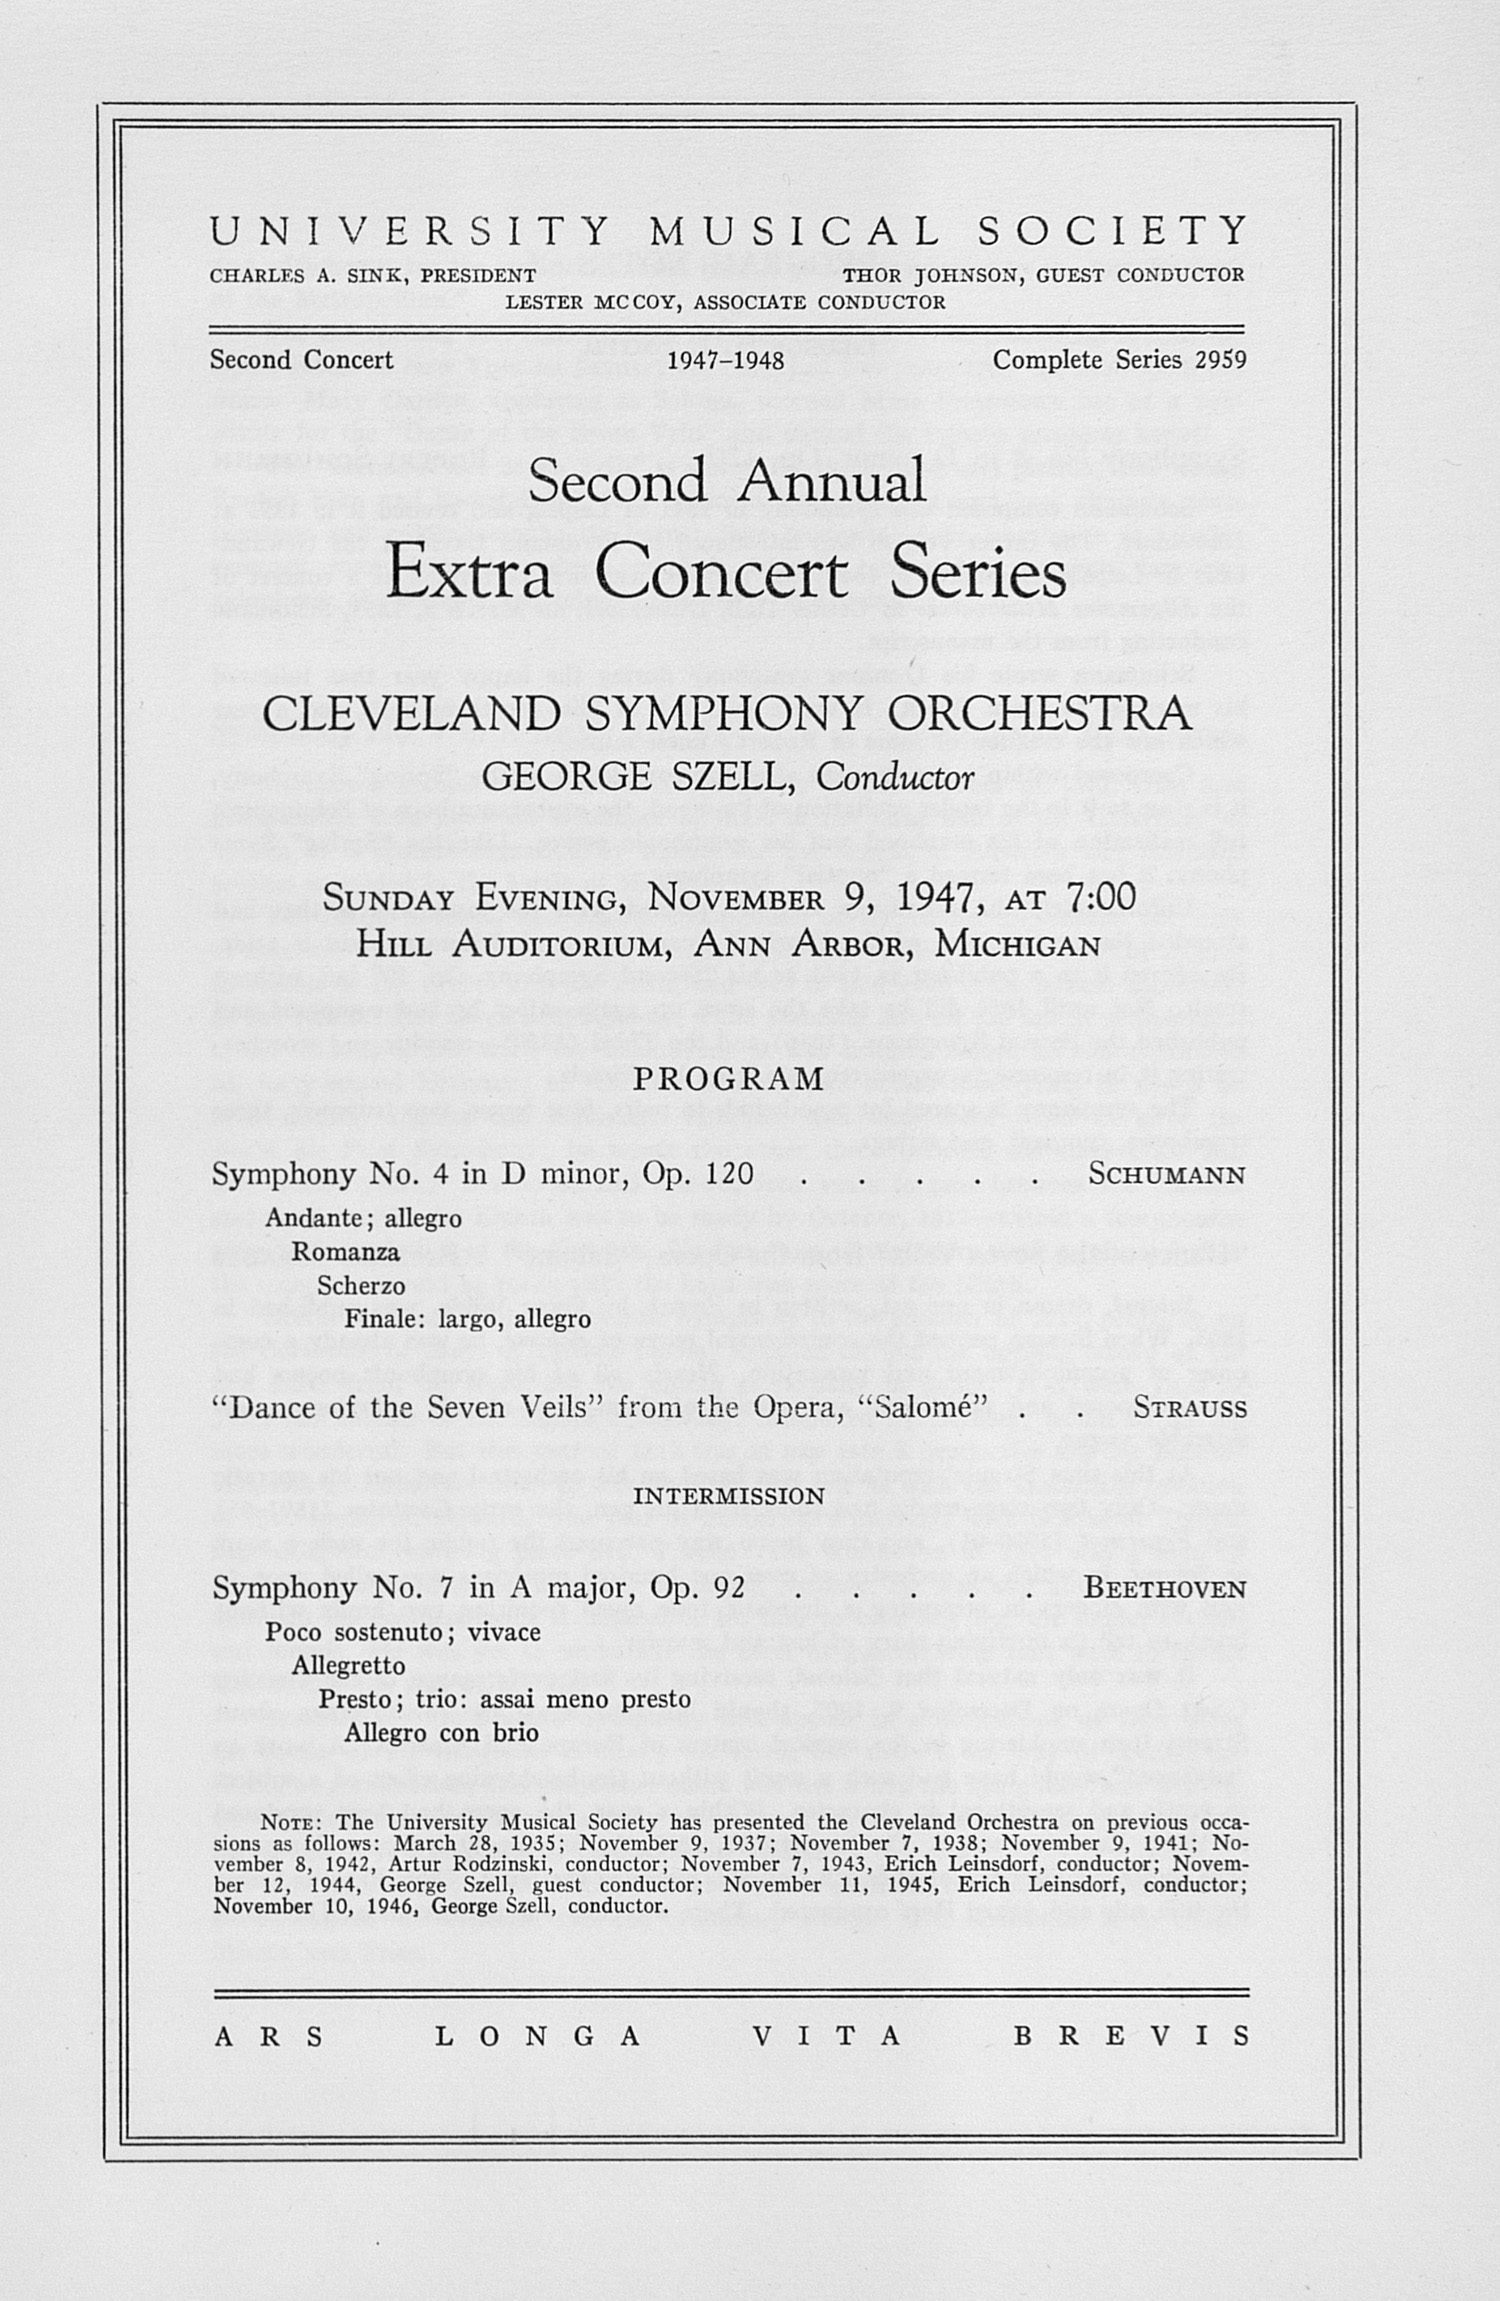 UMS Concert Program, November 9, 1947: Second Annual Extra Concert Series -- Cleveland Symphony Orchestra image